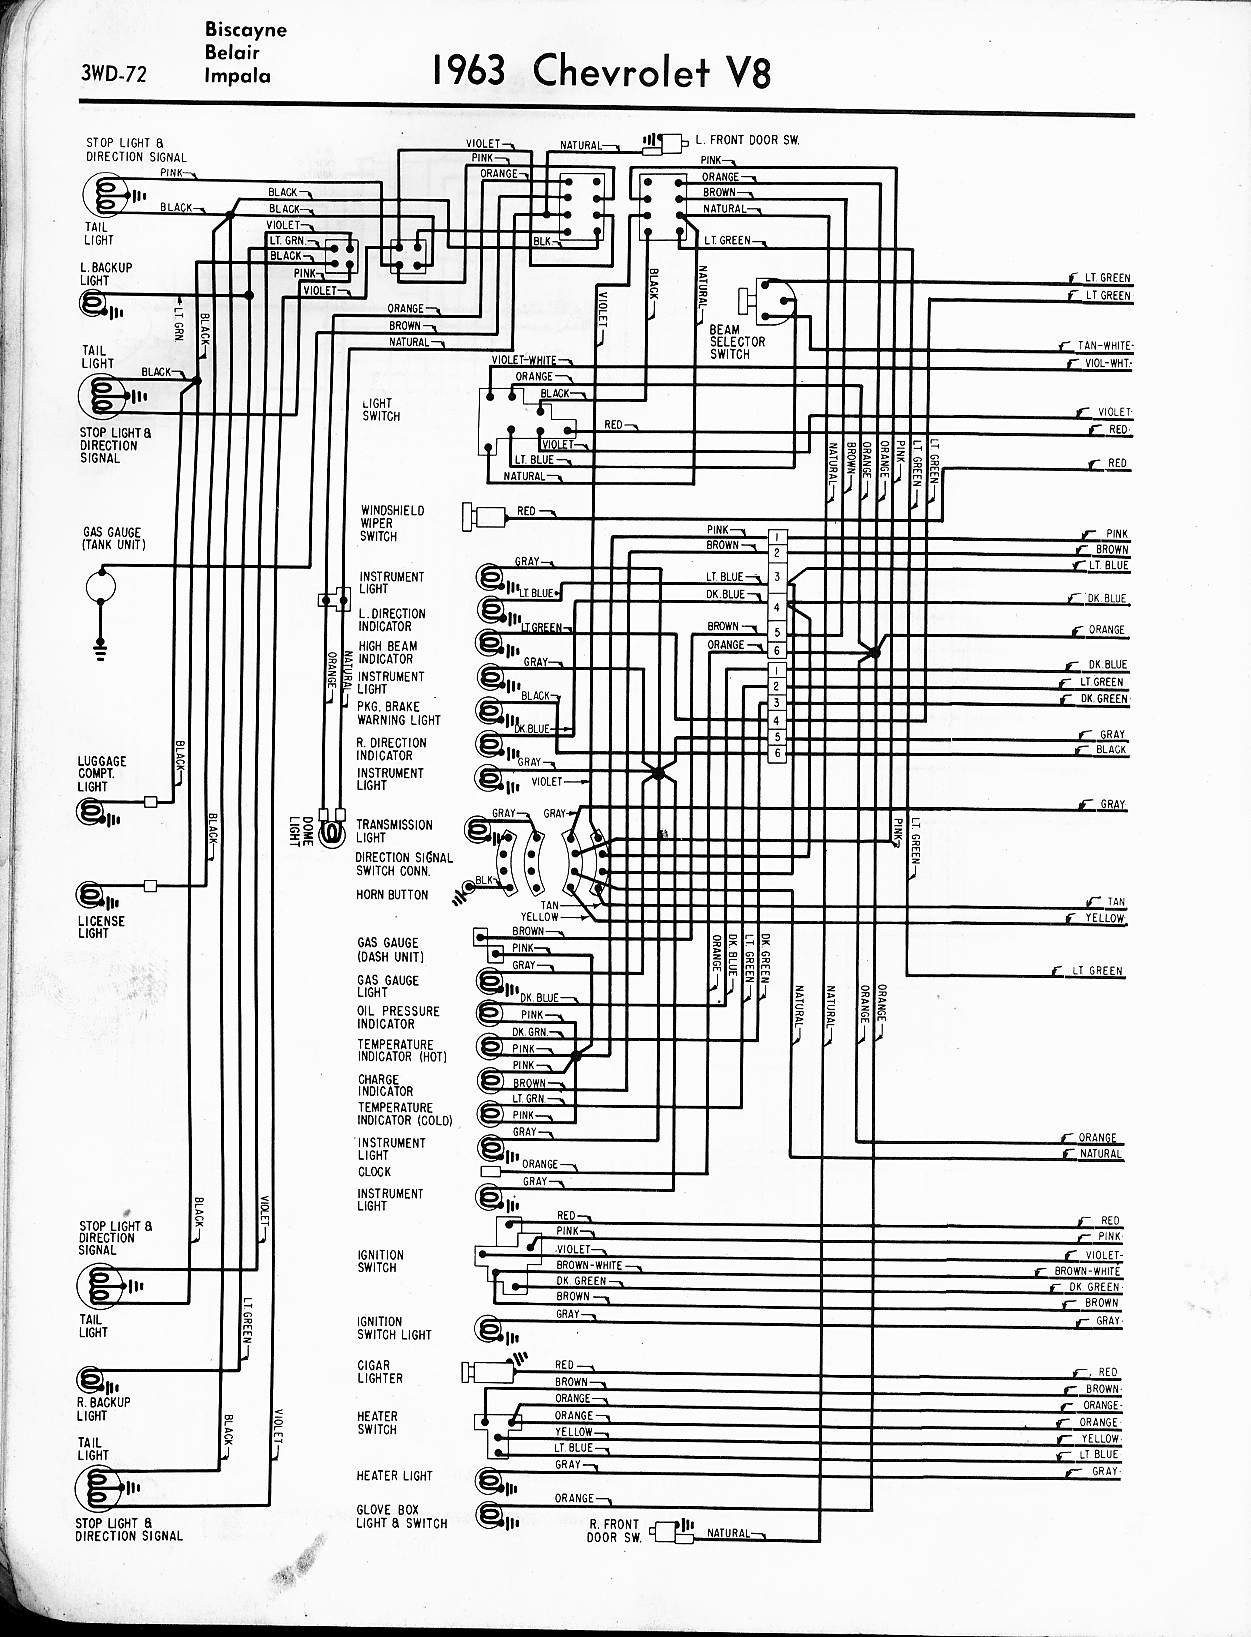 72 Impala Wiring Diagram - Wiring Diagrams on